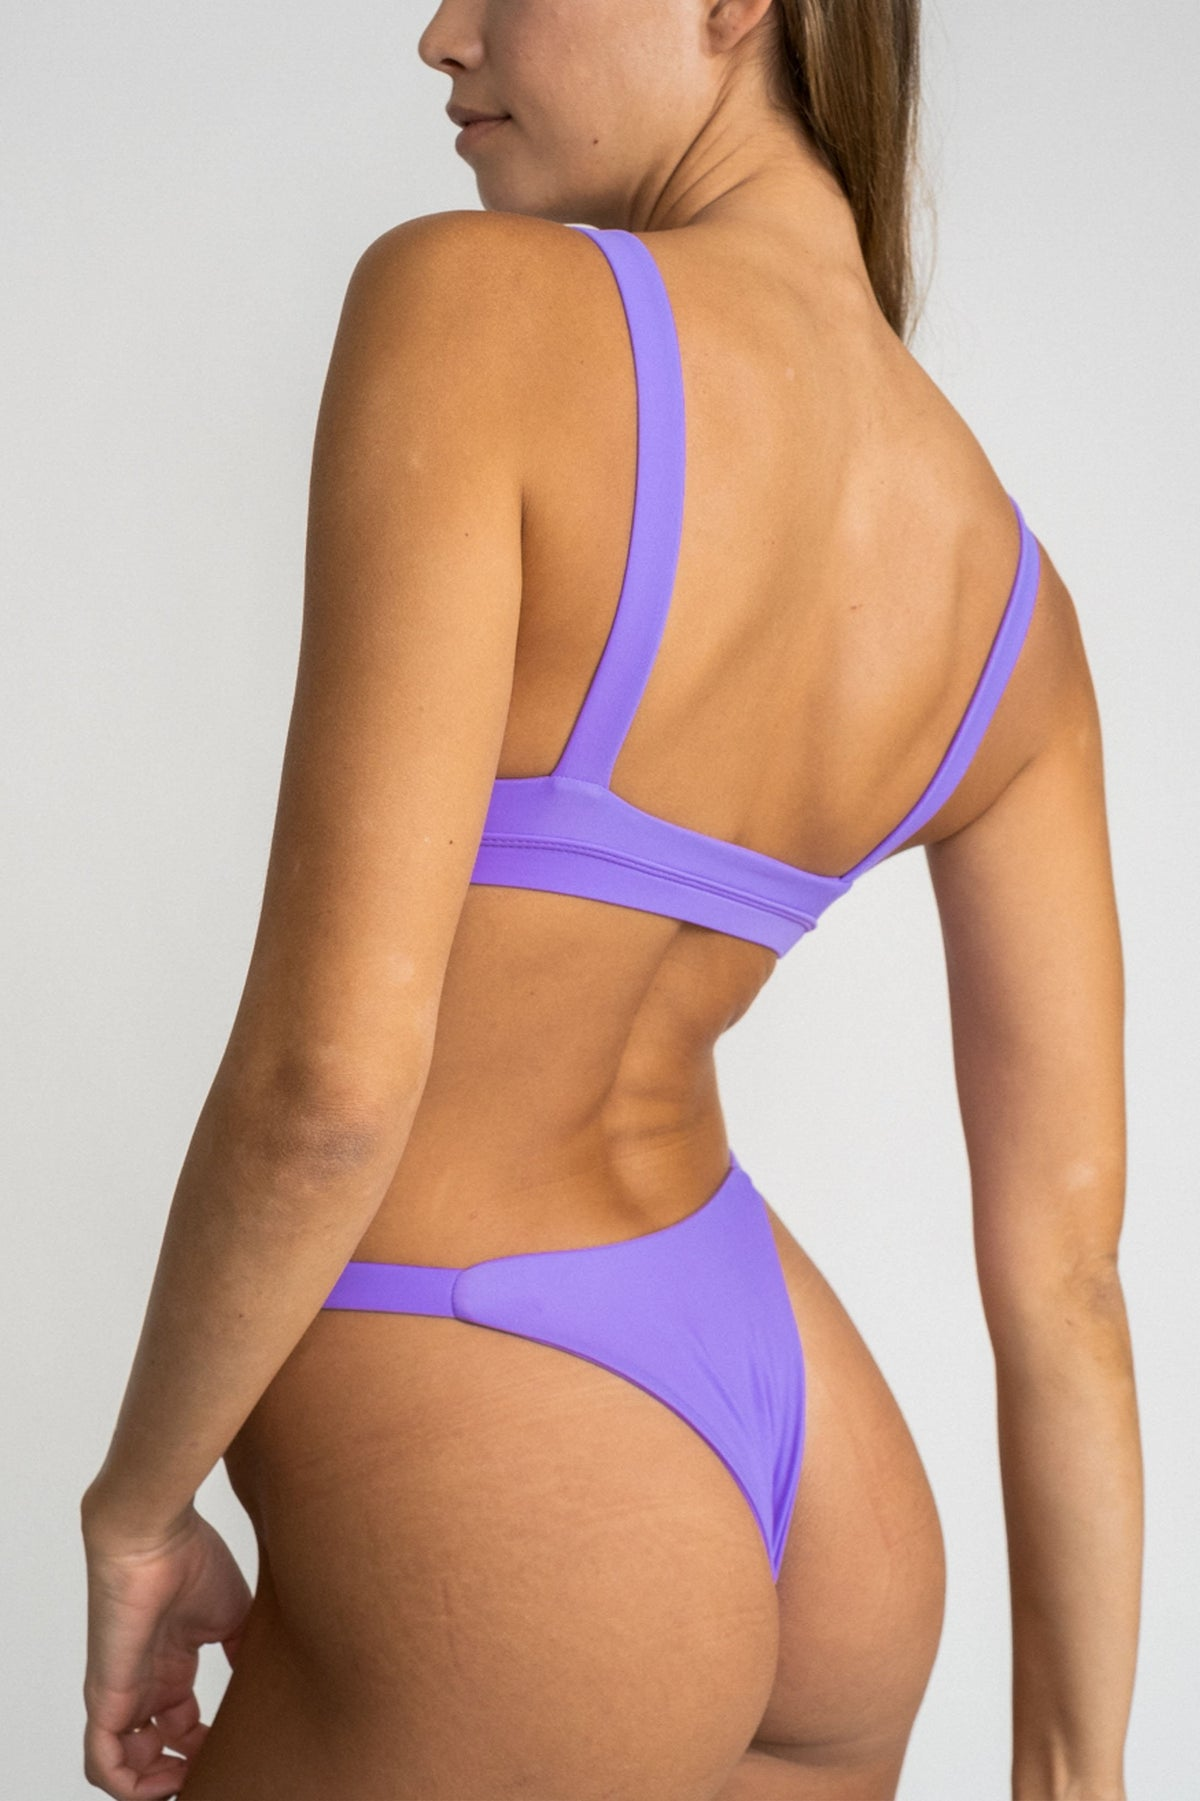 The back of a woman leaning to the side wearing high cut minimal coverage bright purple bikini bottoms and a matching bright purple bikini top.